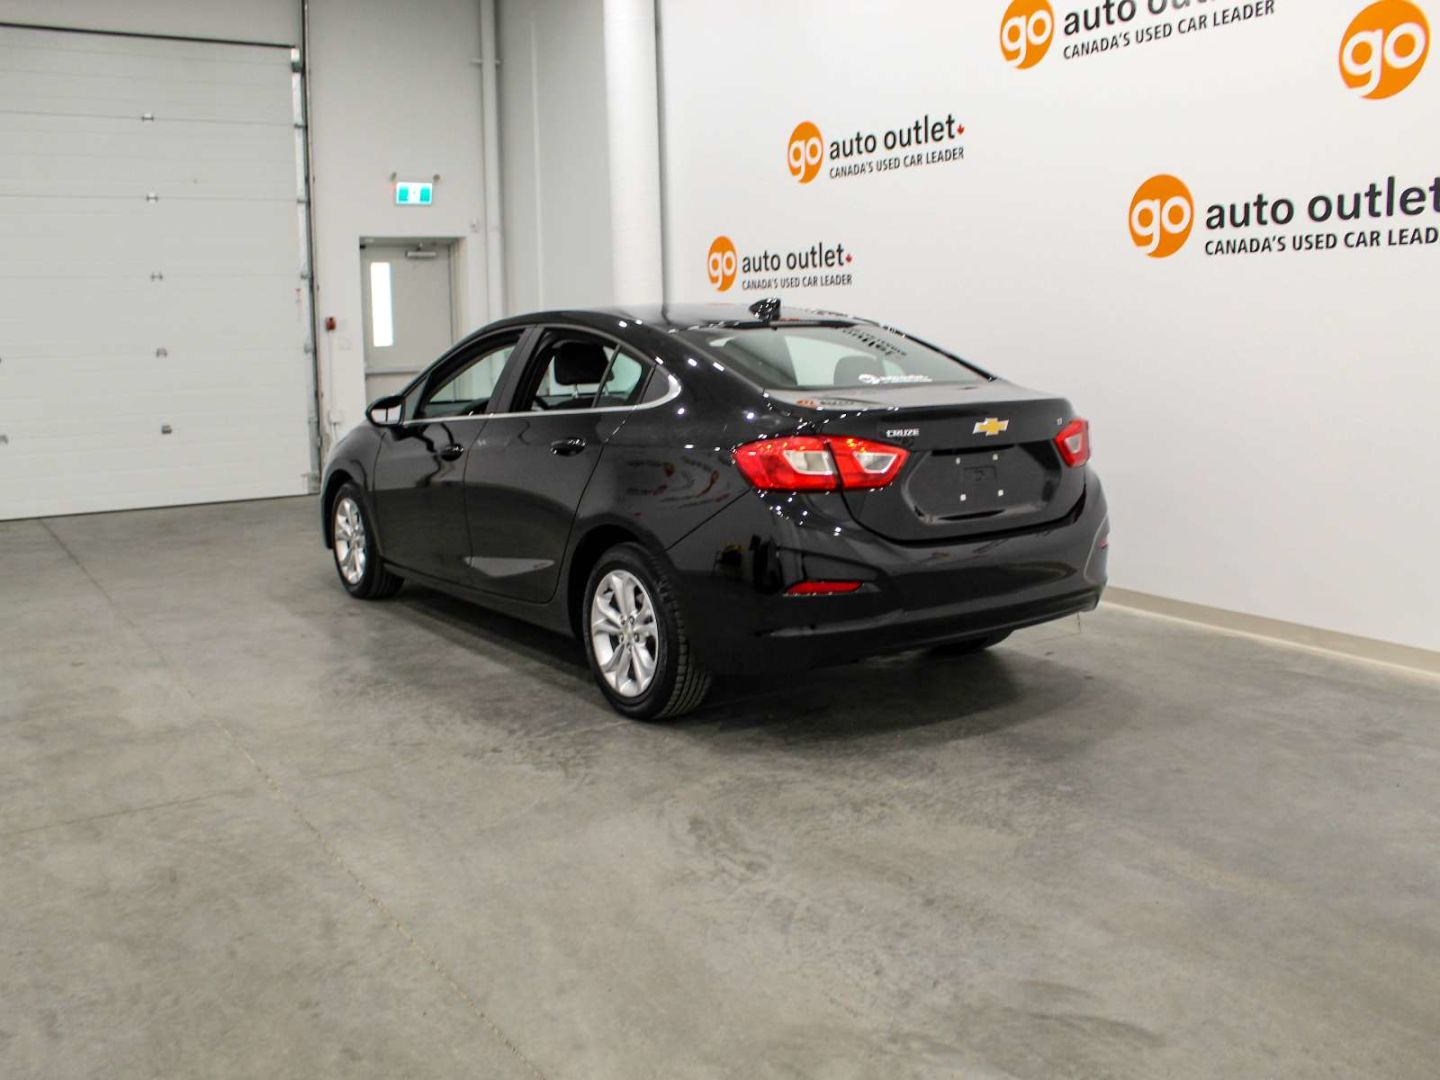 2019 Chevrolet Cruze LT for sale in Edmonton, Alberta